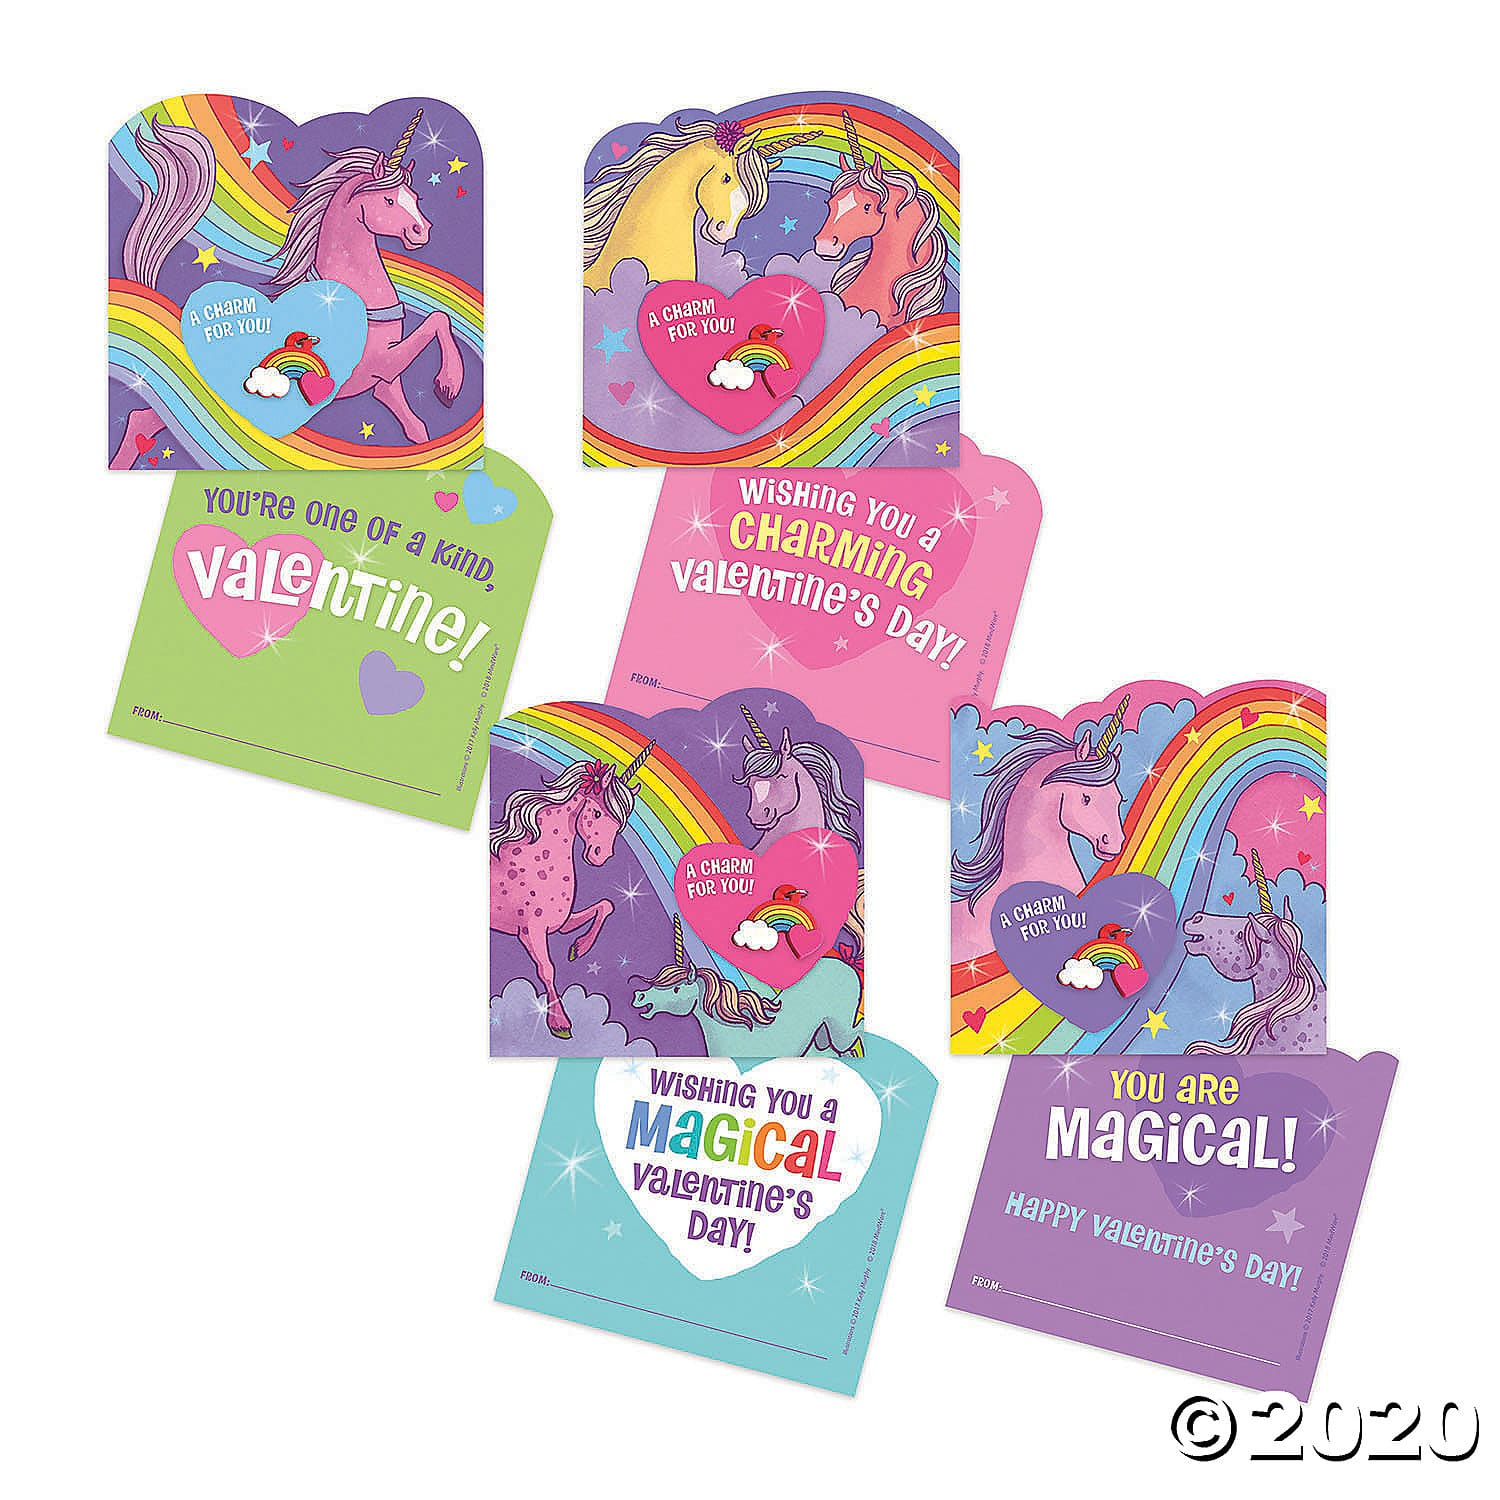 Rainbow Charm Unicorn Super Fun Valentine Pack. These adorable unicorn cards include a rainbow charm keepsake! Three unique designs create this pack of 28 specialty cards, 28 rainbow charms, and 28 envelopes. 2020 Valentine's Day Gift Guide from Jays Sweet N Sour Life Blog.